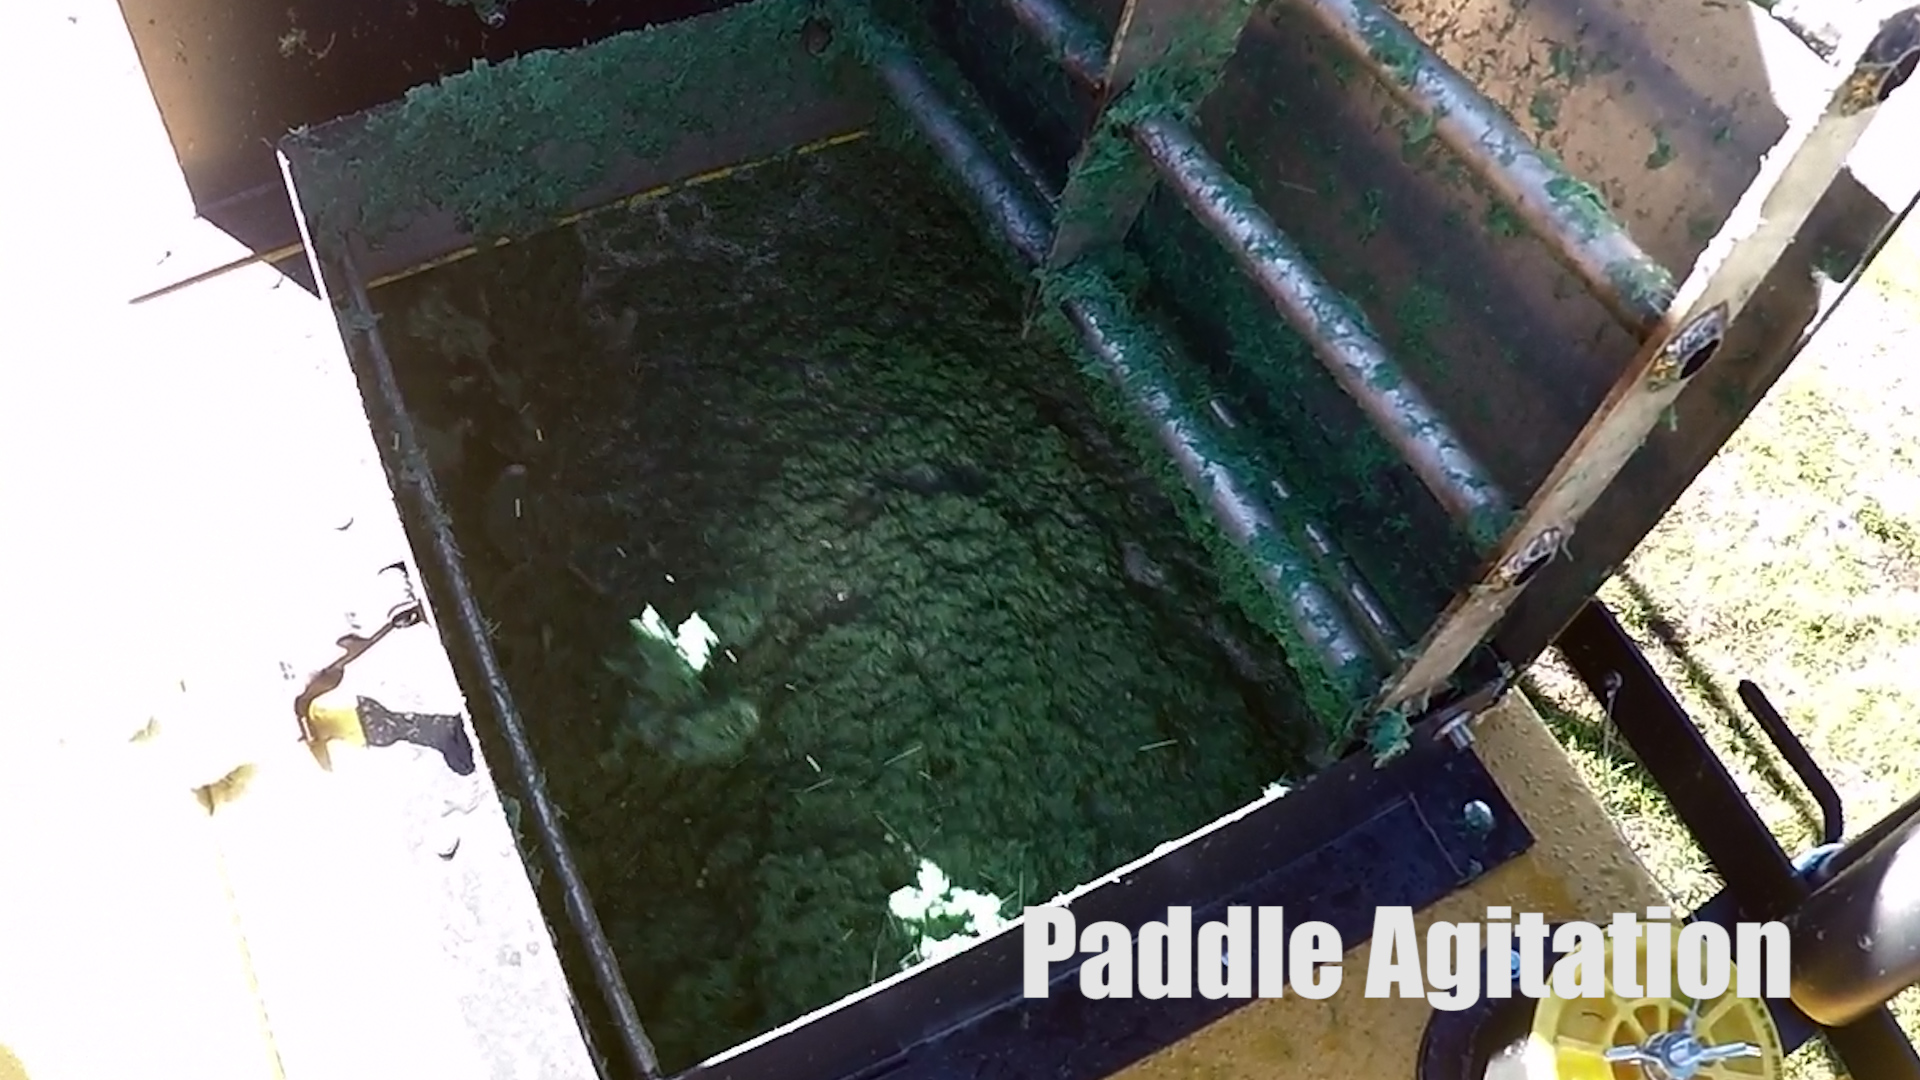 2153_paddle-agitation Paddle Agitation Hydroseeder | C170 | All Hydraulic Controls